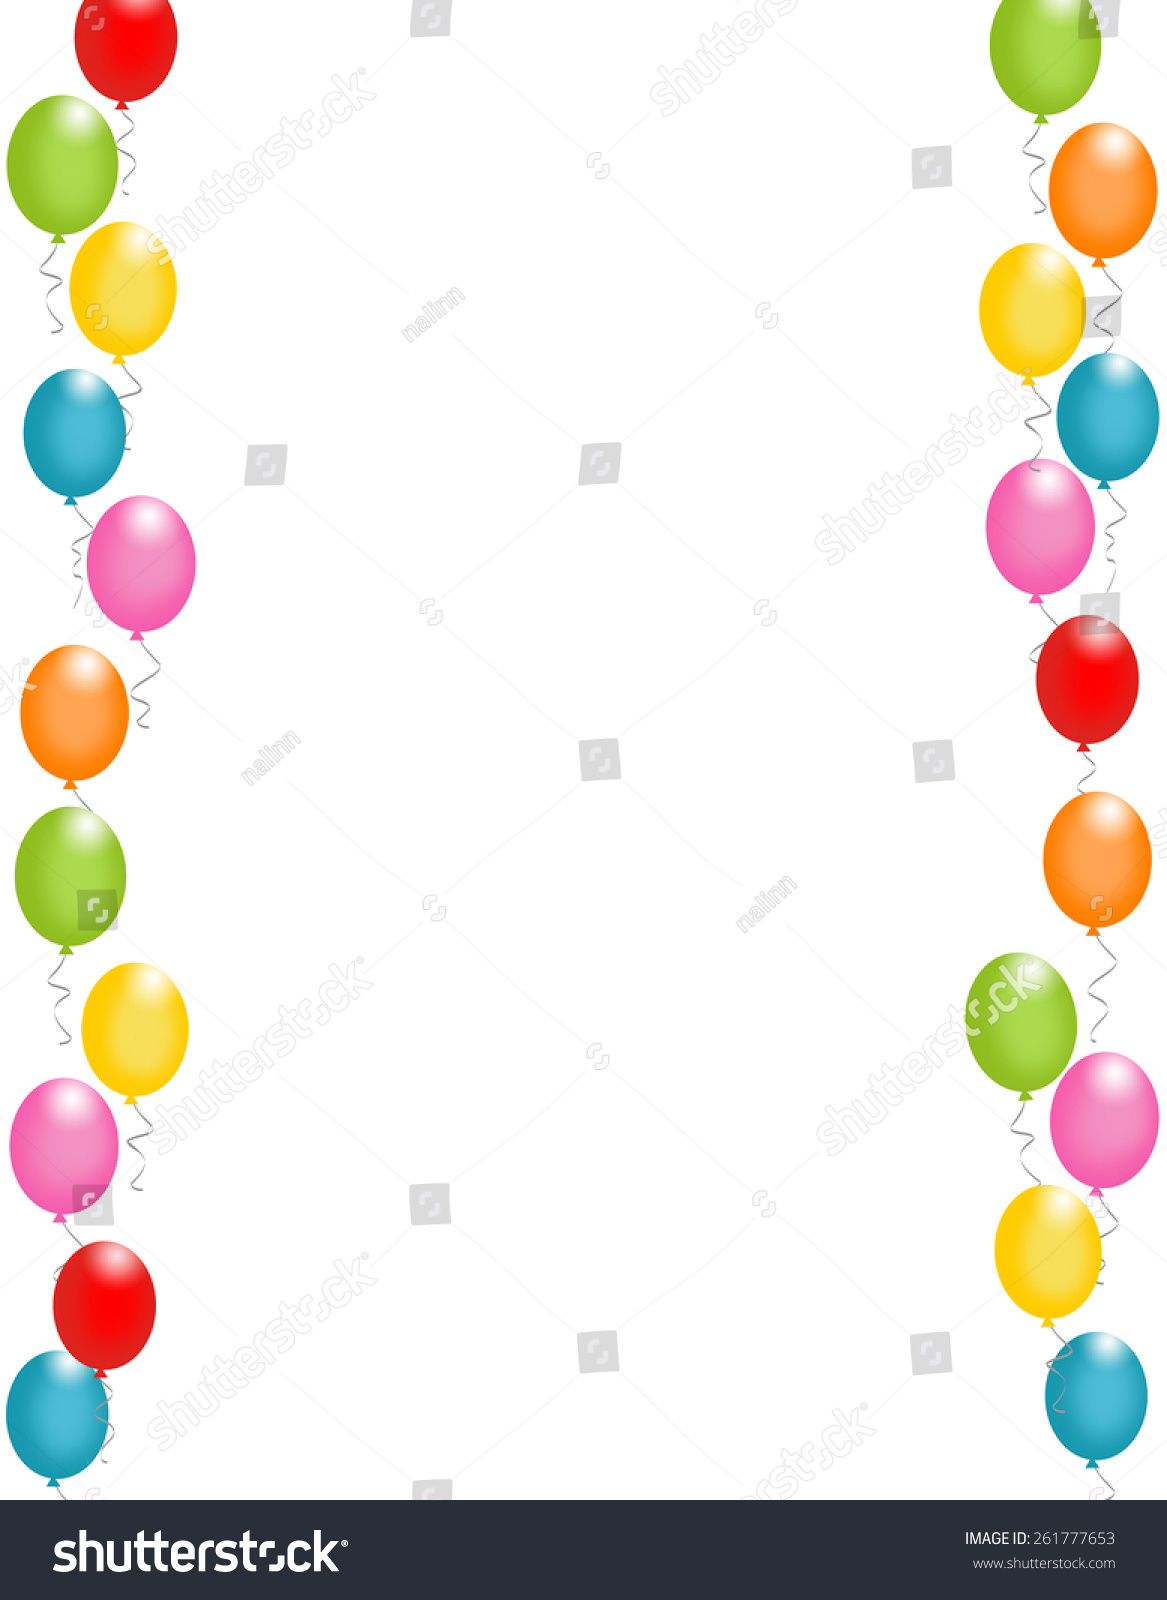 Colorful balloons border / frame illustration for birthday cards and ...